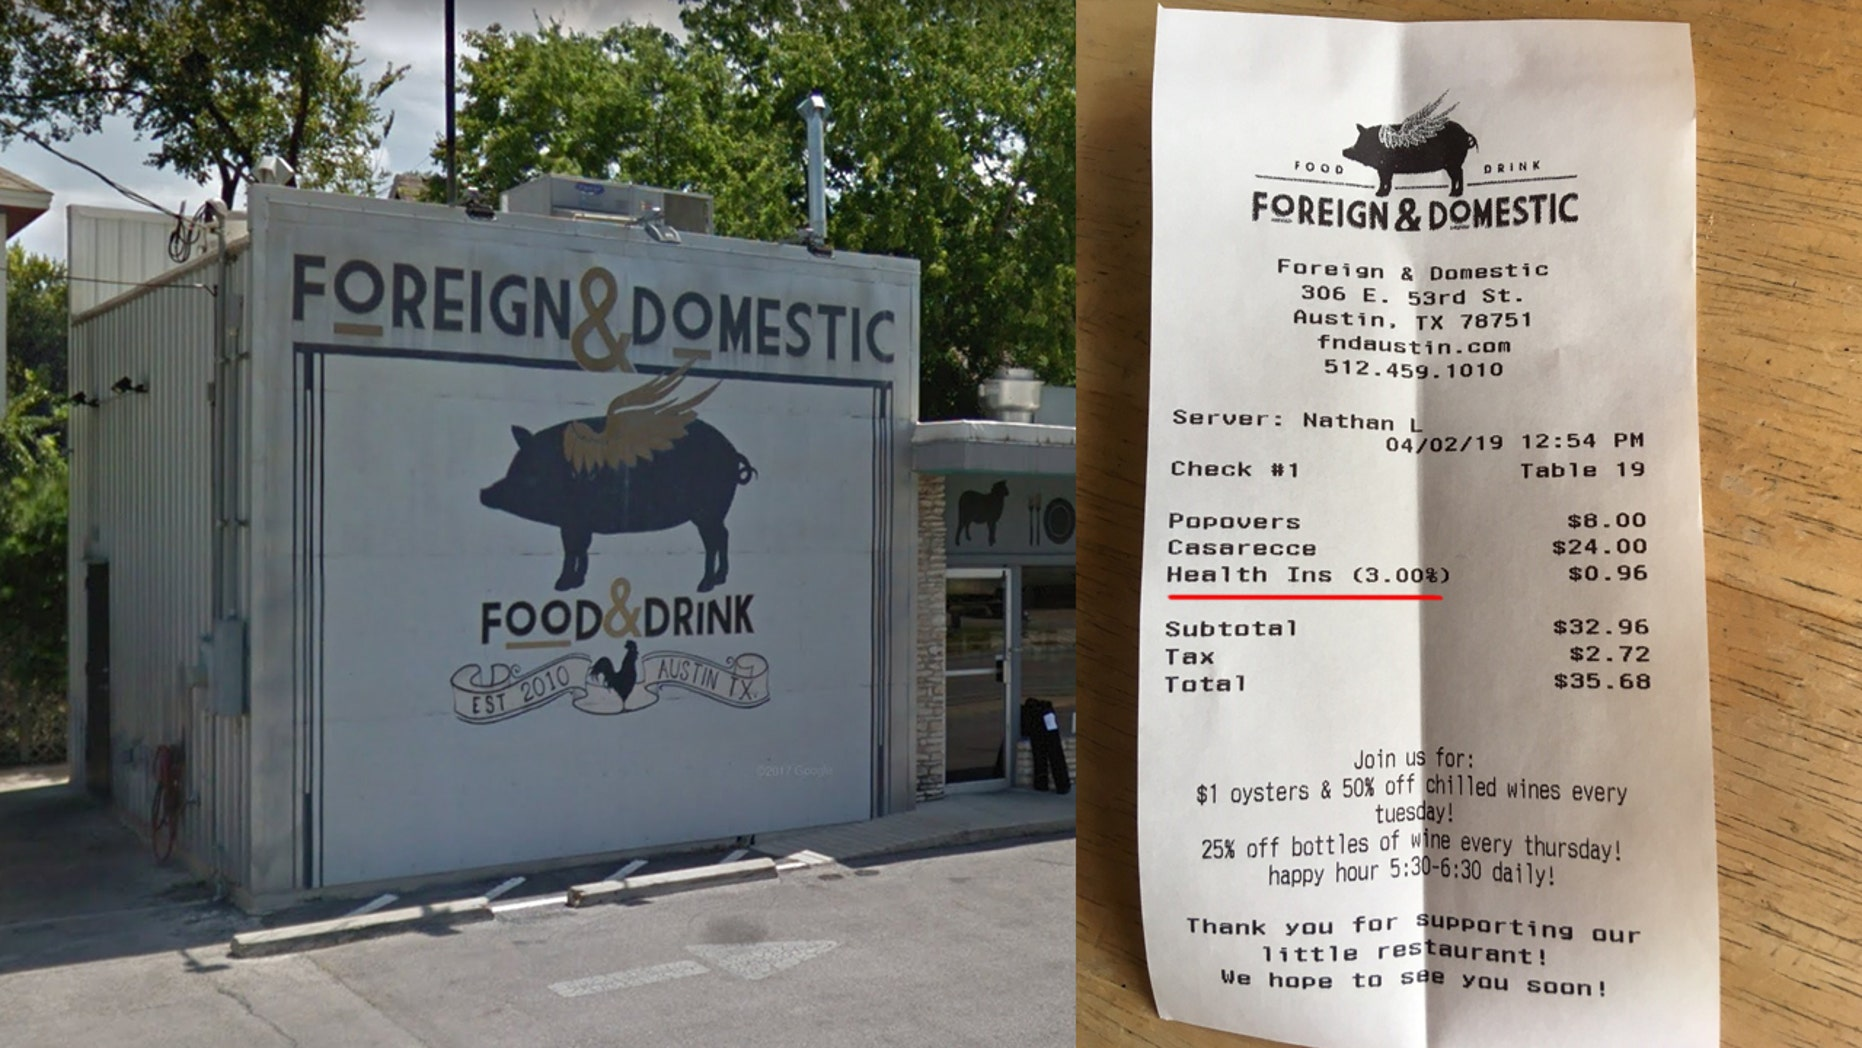 Sarah Heard, the co-owner of Foreign & Domestic in Austin, tells Fox News that only five patrons have declined to pay the health care surcharge since the restaurant instituted the optional fee on Jan. 1.